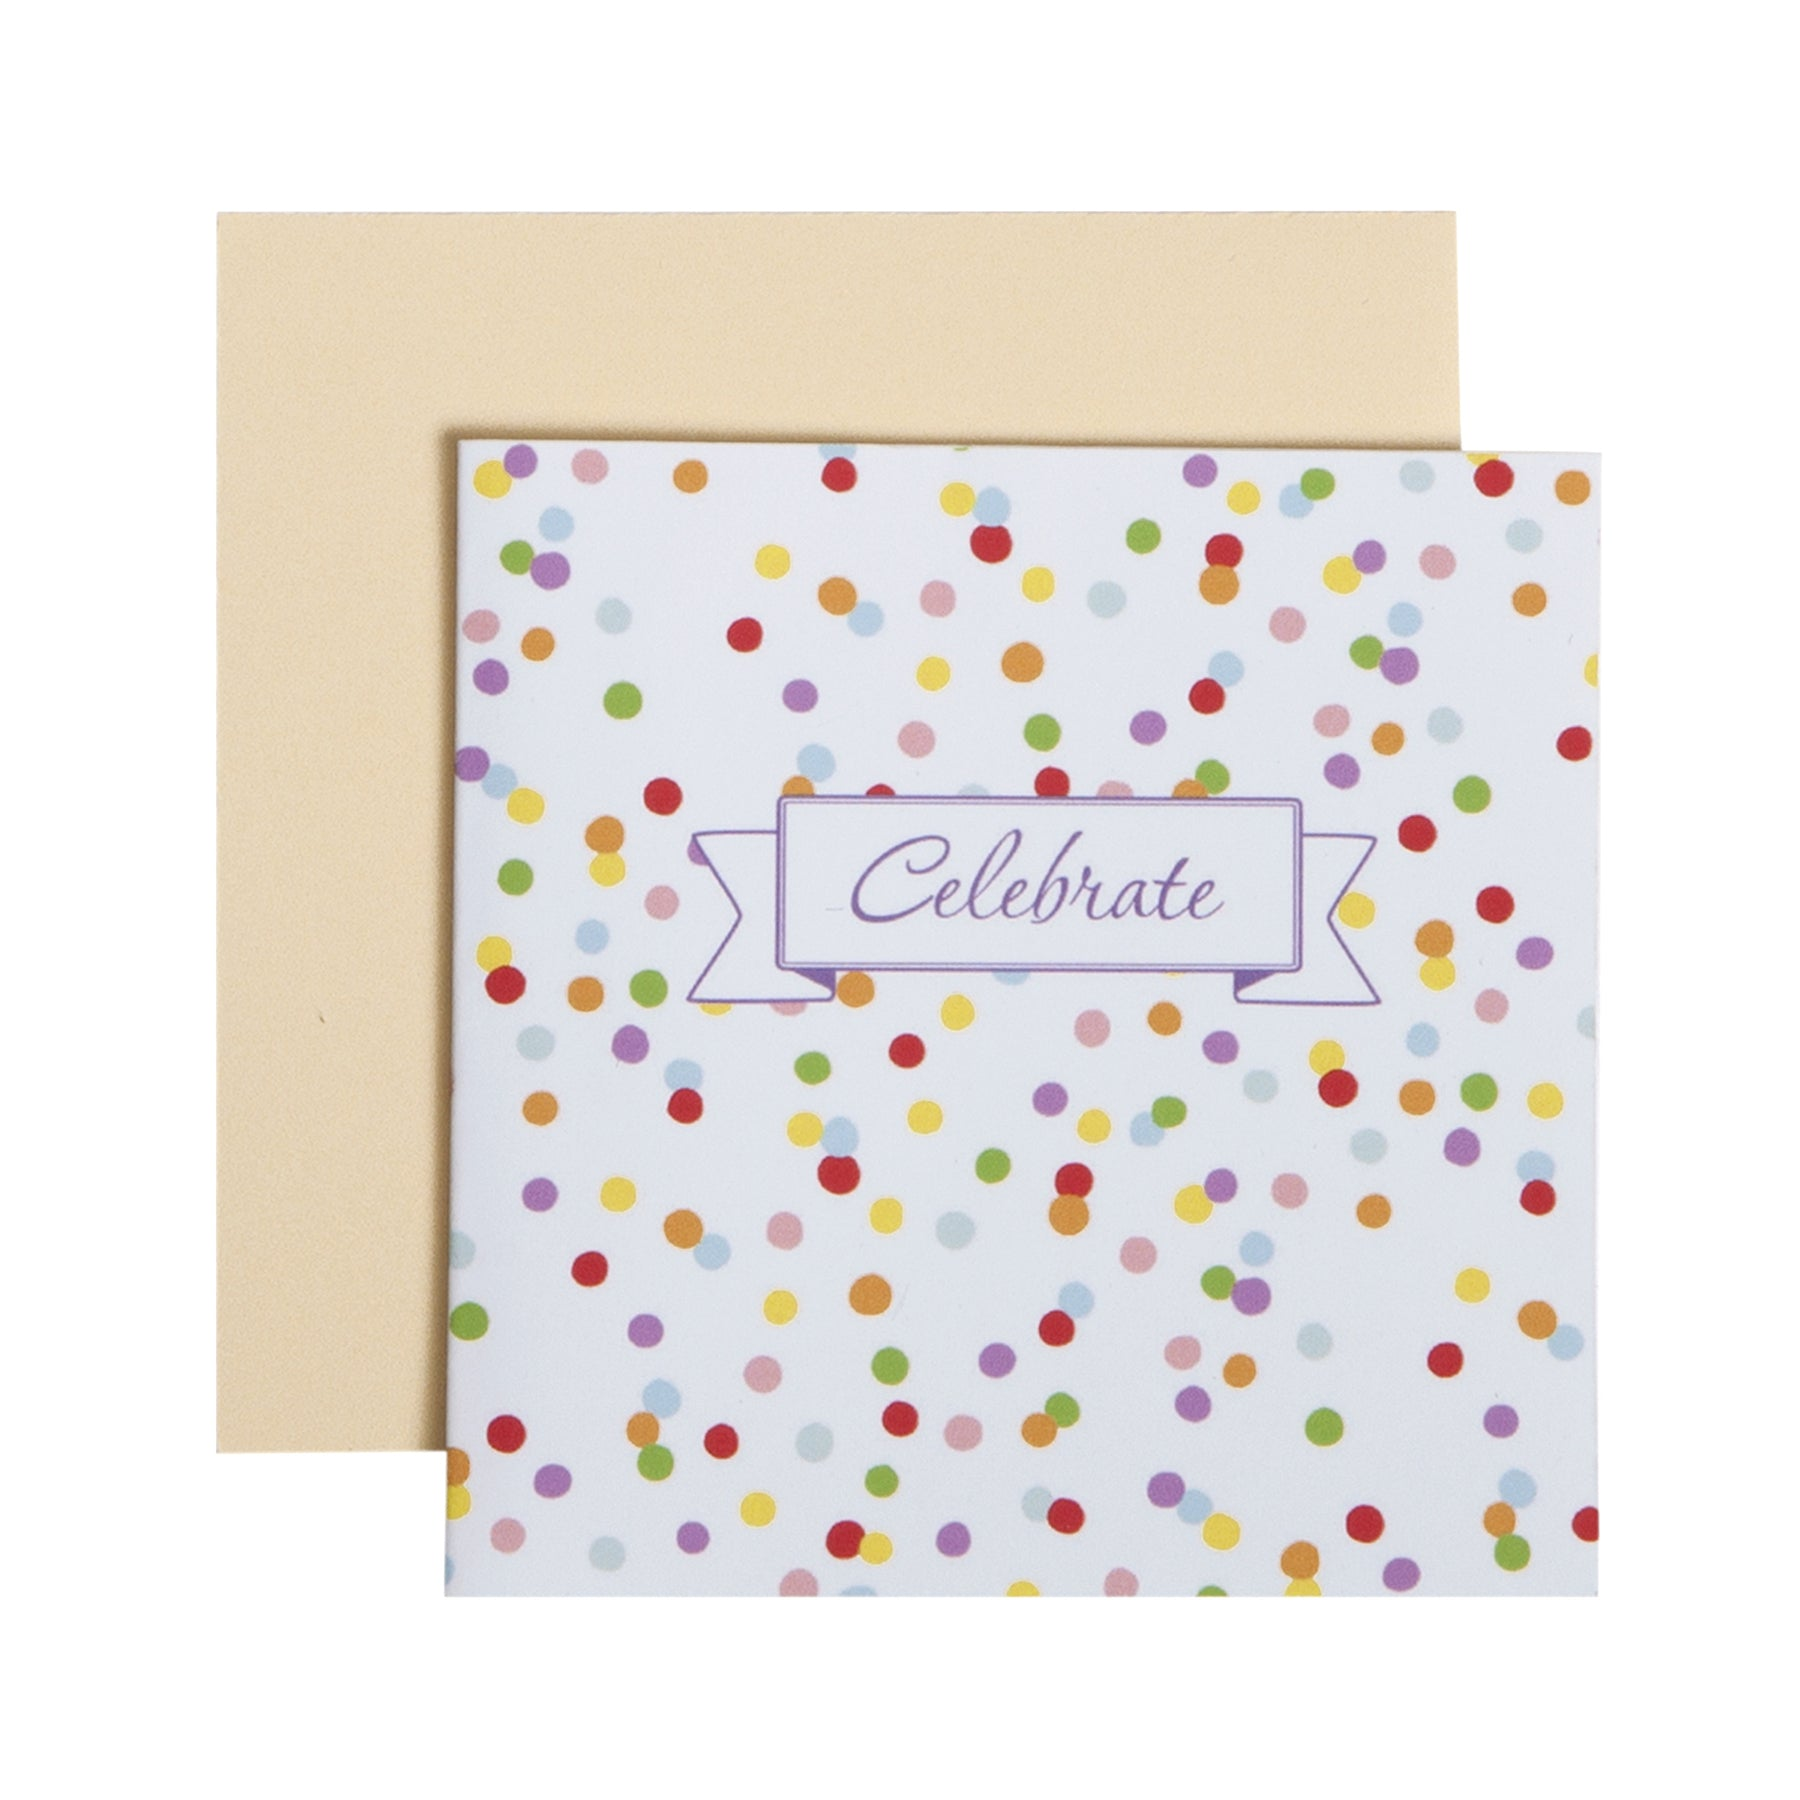 "alt=""Celebrate multicolour confetti gift enclosure card with yellow envelope"""